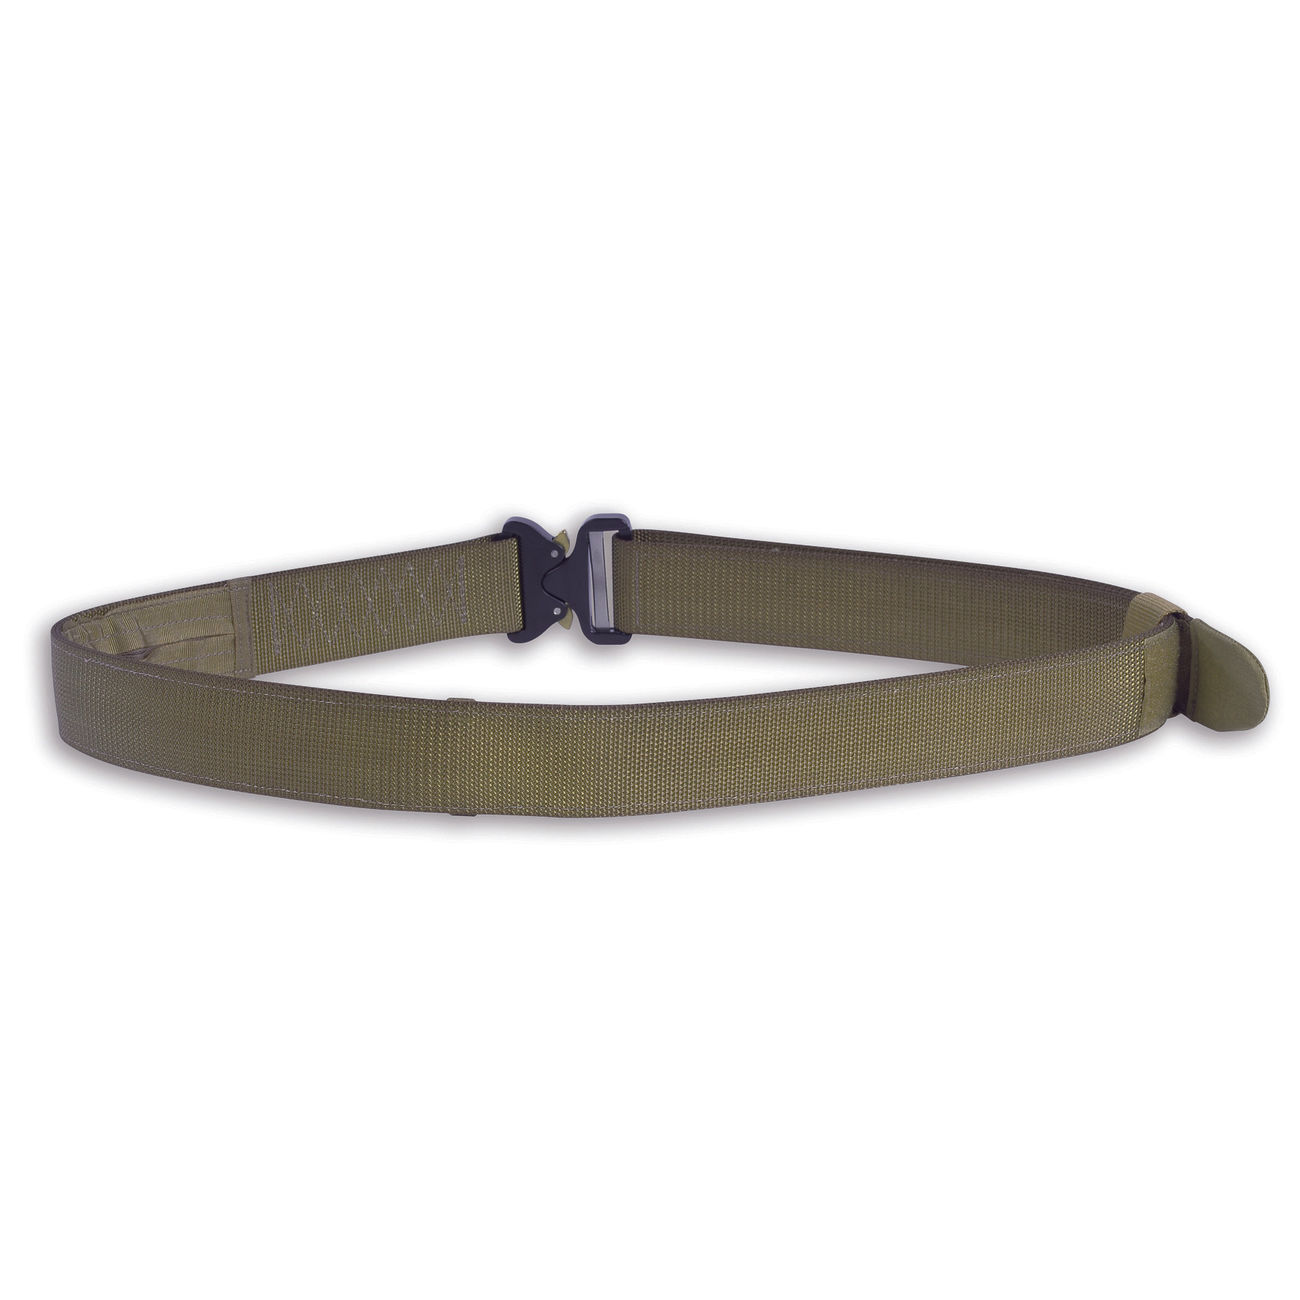 TT Gürtel Tactical Belt MK II mit Cobra Buckle Coyote Brown 1